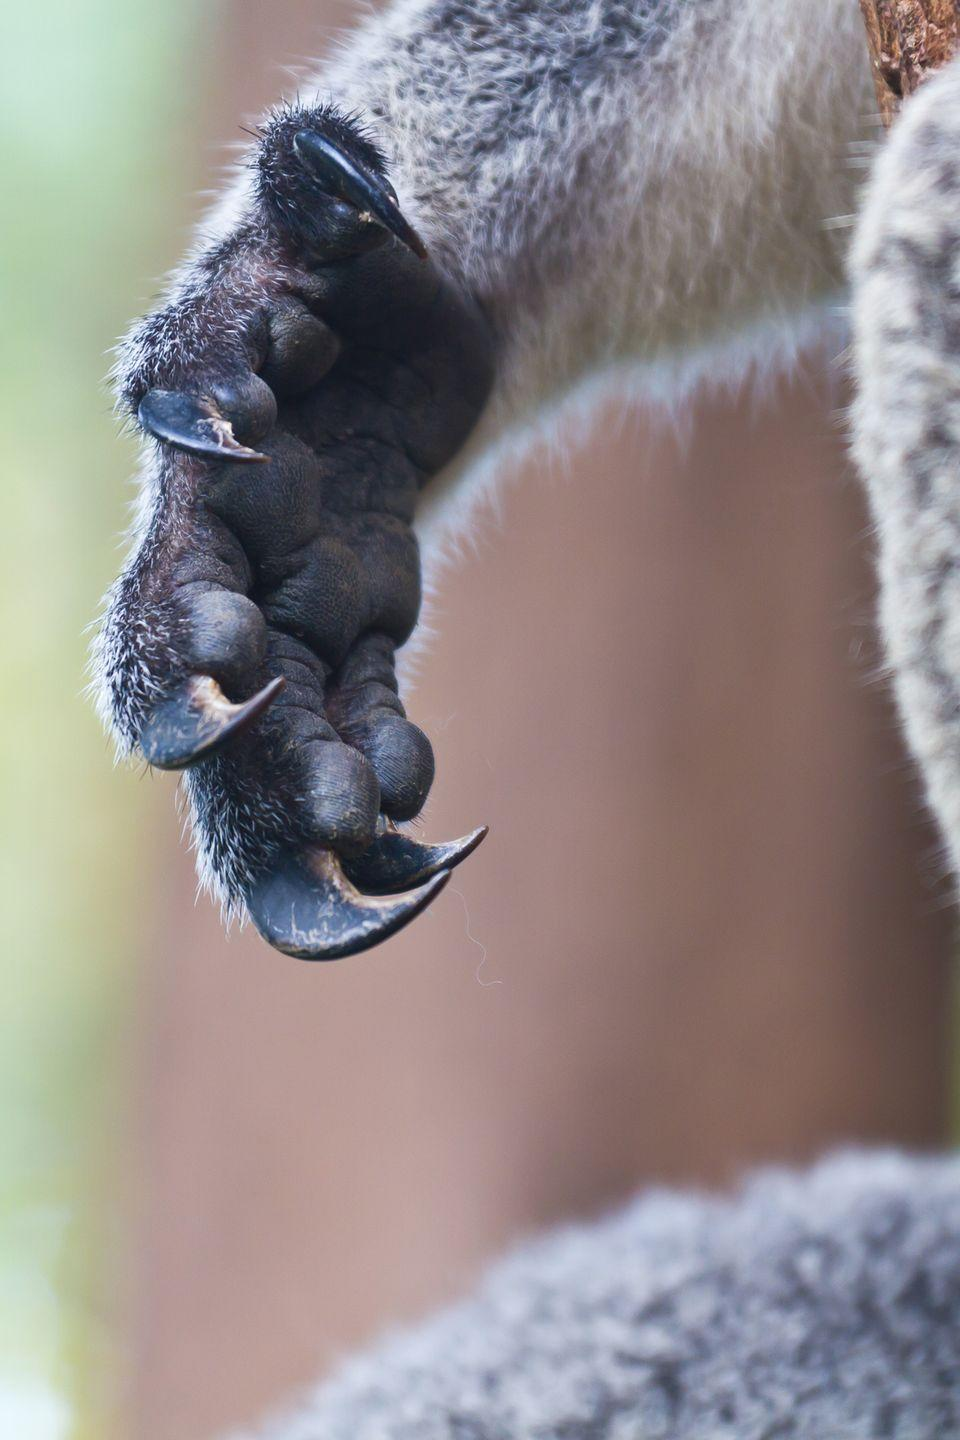 <p>In 1996, a team of anatomists at the University of Adelaide in Australia discovered that koala and human fingerprints can easily be mistaken for one another, likely due to the fact that koalas are ancestors of primates.</p>